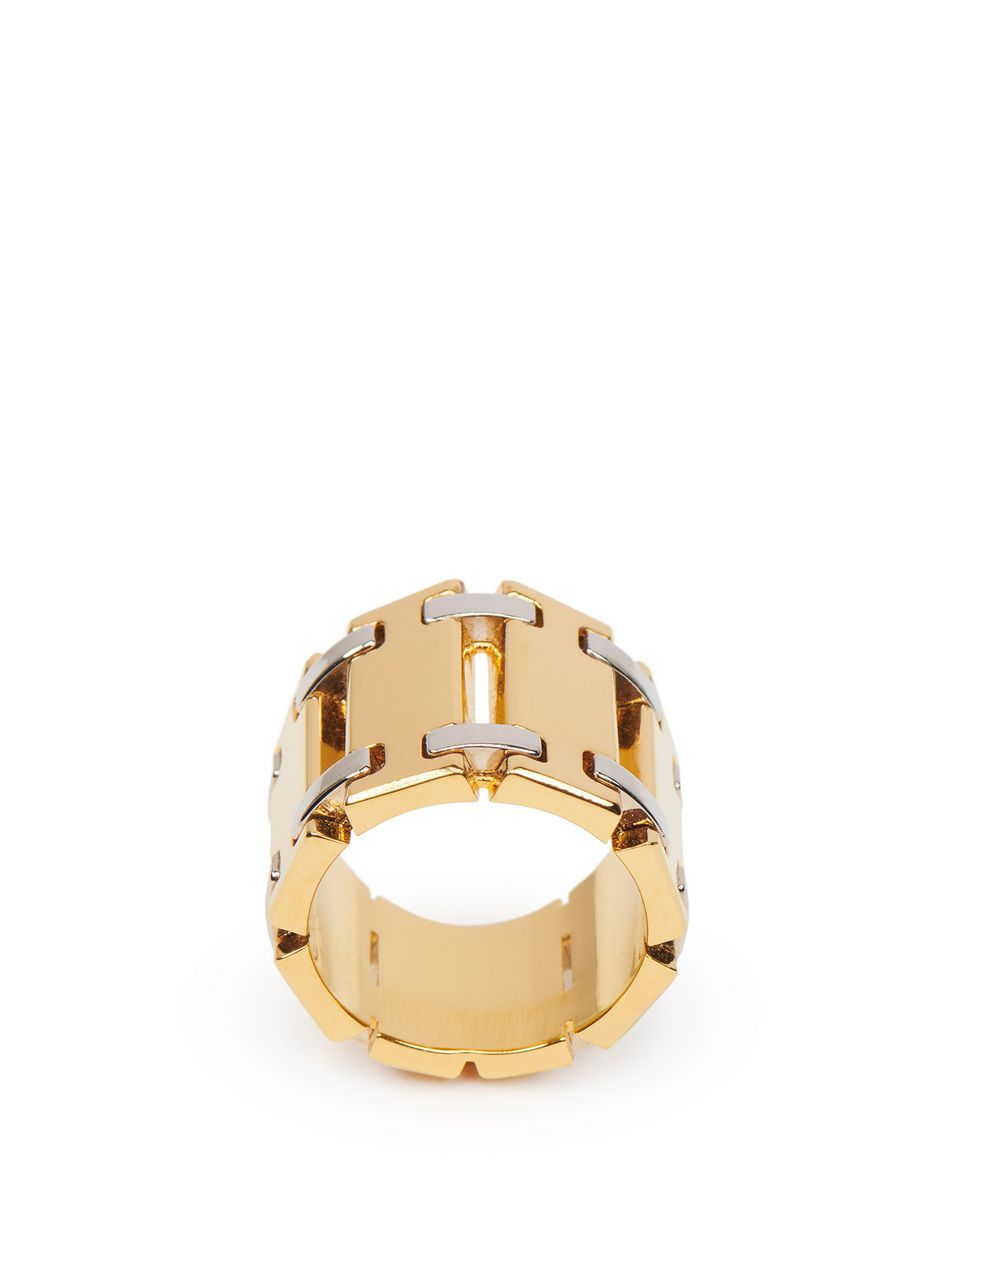 GOURMETTE RING - Lanvin